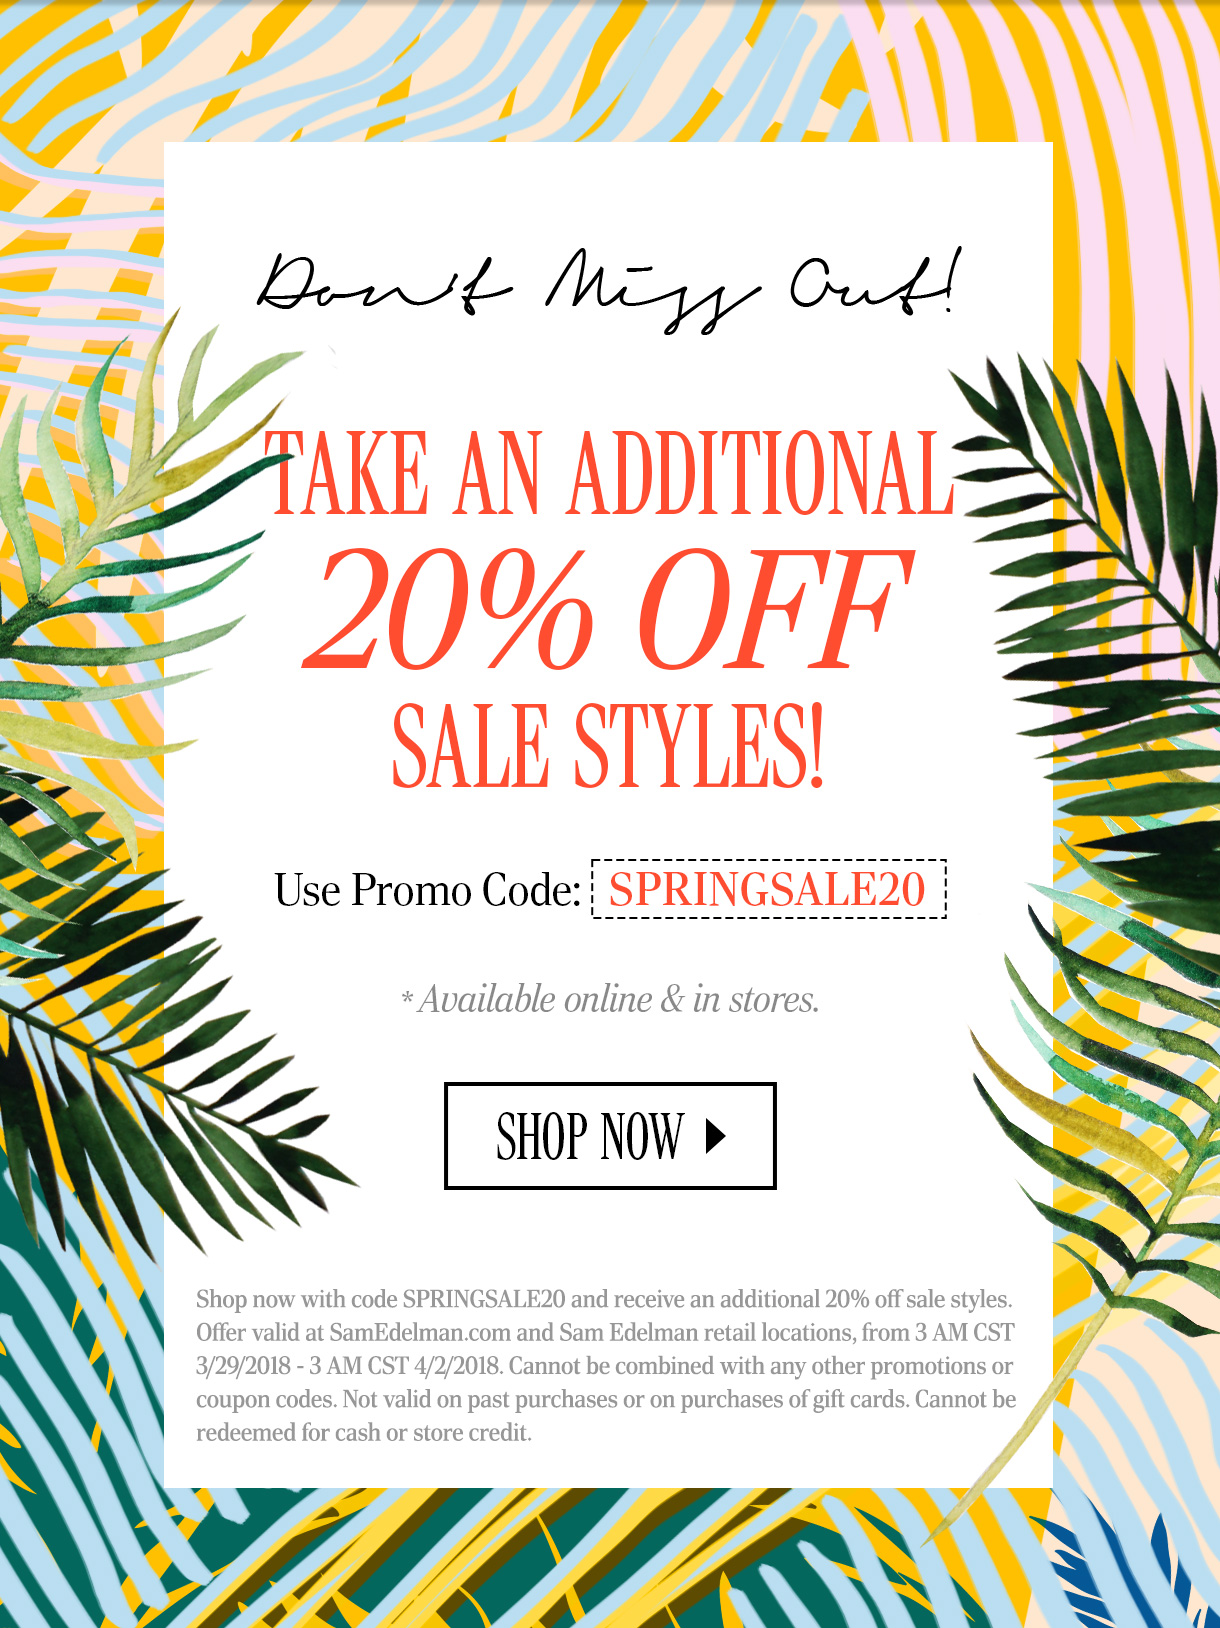 DON'T MISS OUT! TAKE AN ADDITIONAL 20% OFF SALE STYLES! Use Promo Code: SPRINGSALE20. * Available online & in stores. SHOP NOW. Shop now with code SPRINGSALE20 and receive an additional 20% off sale styles. Offer valid at SamEdelman.com and Sam Edelman retail locations, from 3 AM CST 3/29/2018 - 3 AM CST 4/2/2018. Cannot be combined with any other promotions or coupon codes. Not valid on past purchases or on purchases of gift cards. Cannot be redeemed for cash or store credit.